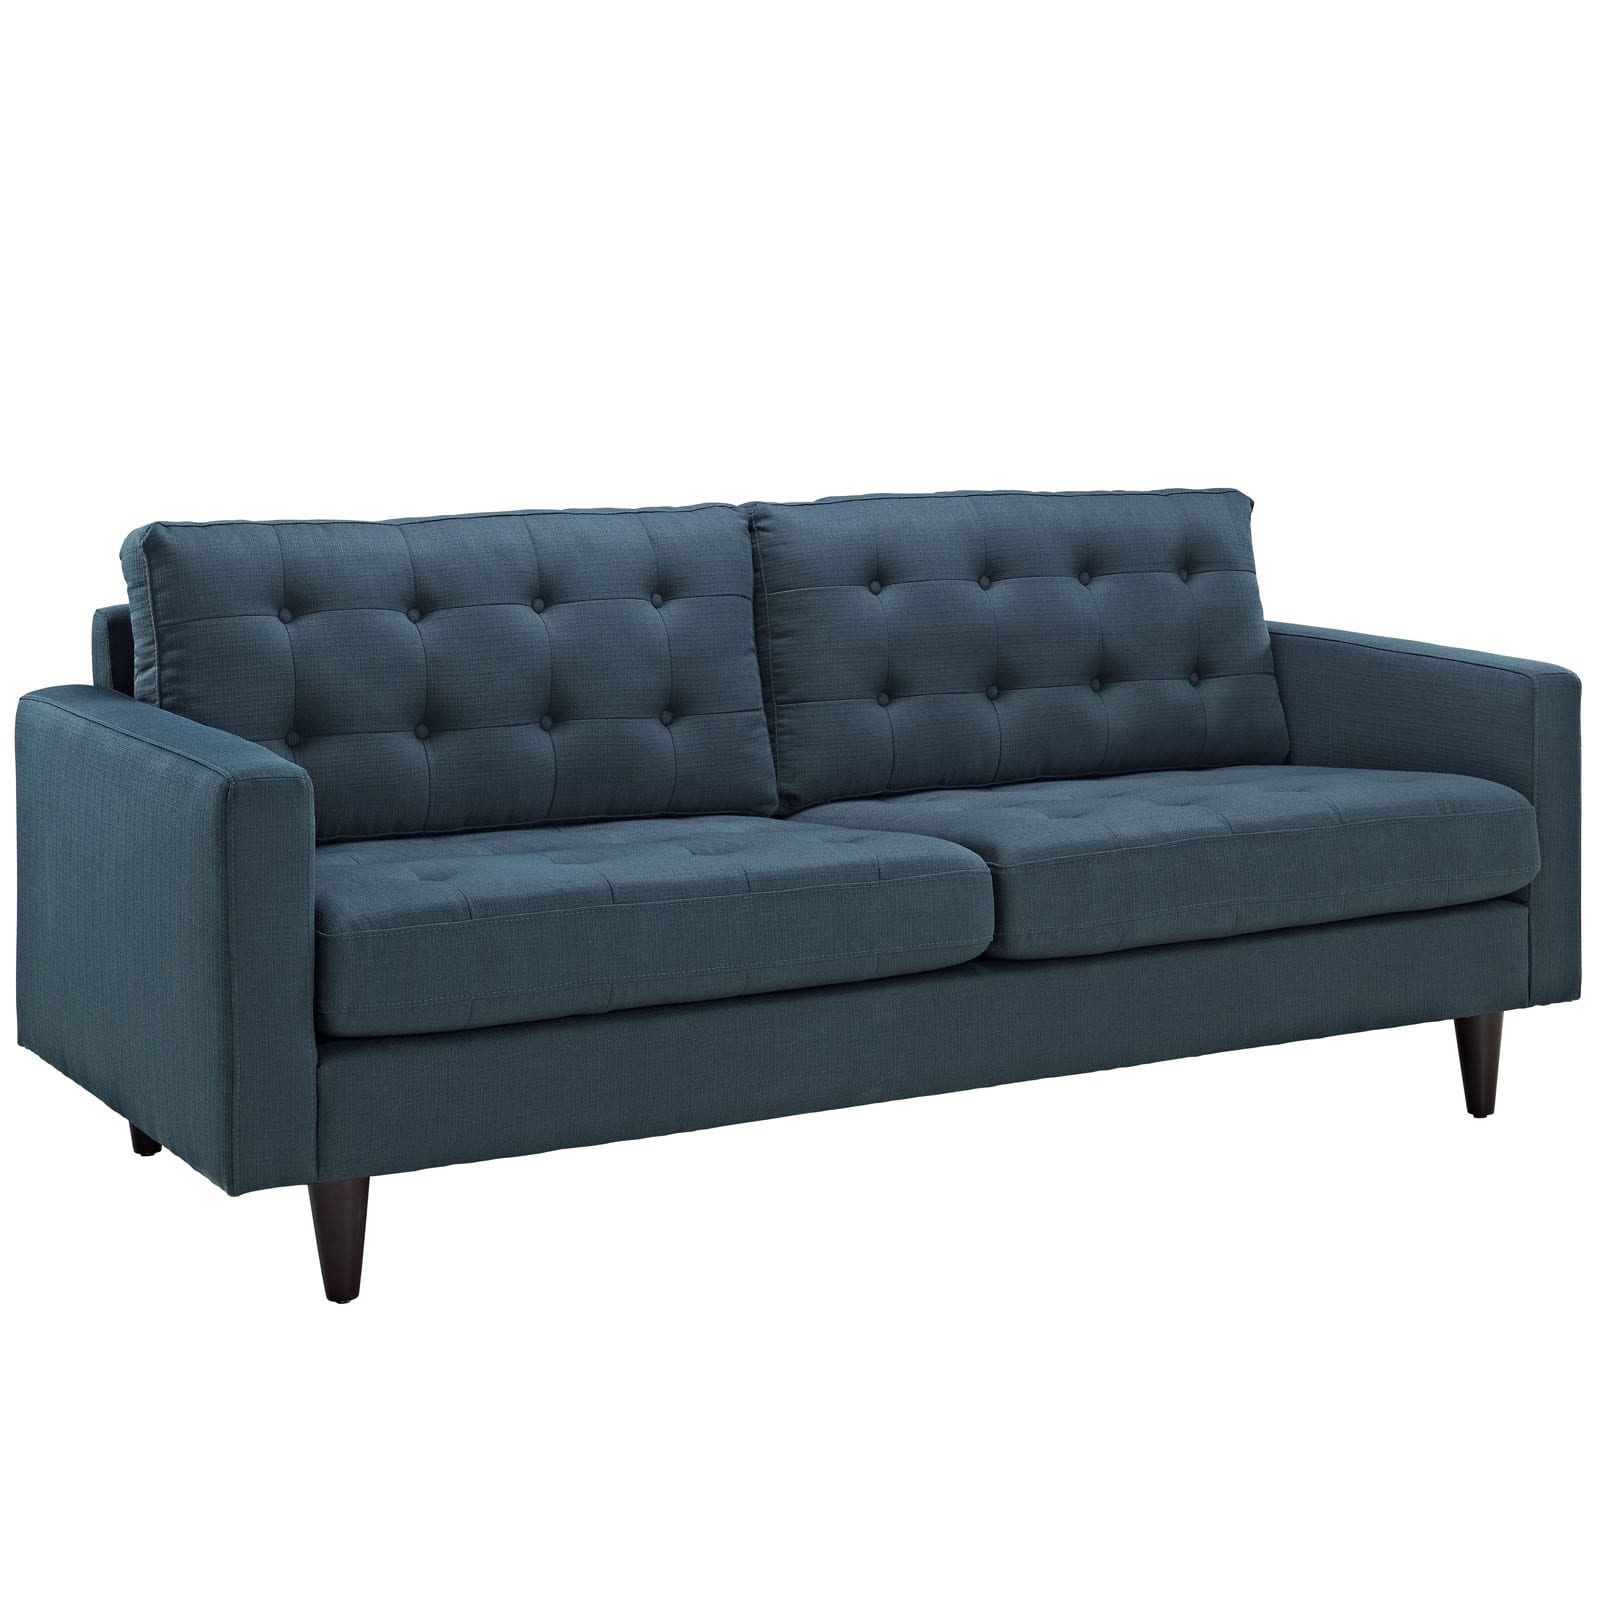 Upholstered sofa empress tufted upholstered sofa - free shipping today - overstock - 15955337 ORIALXV